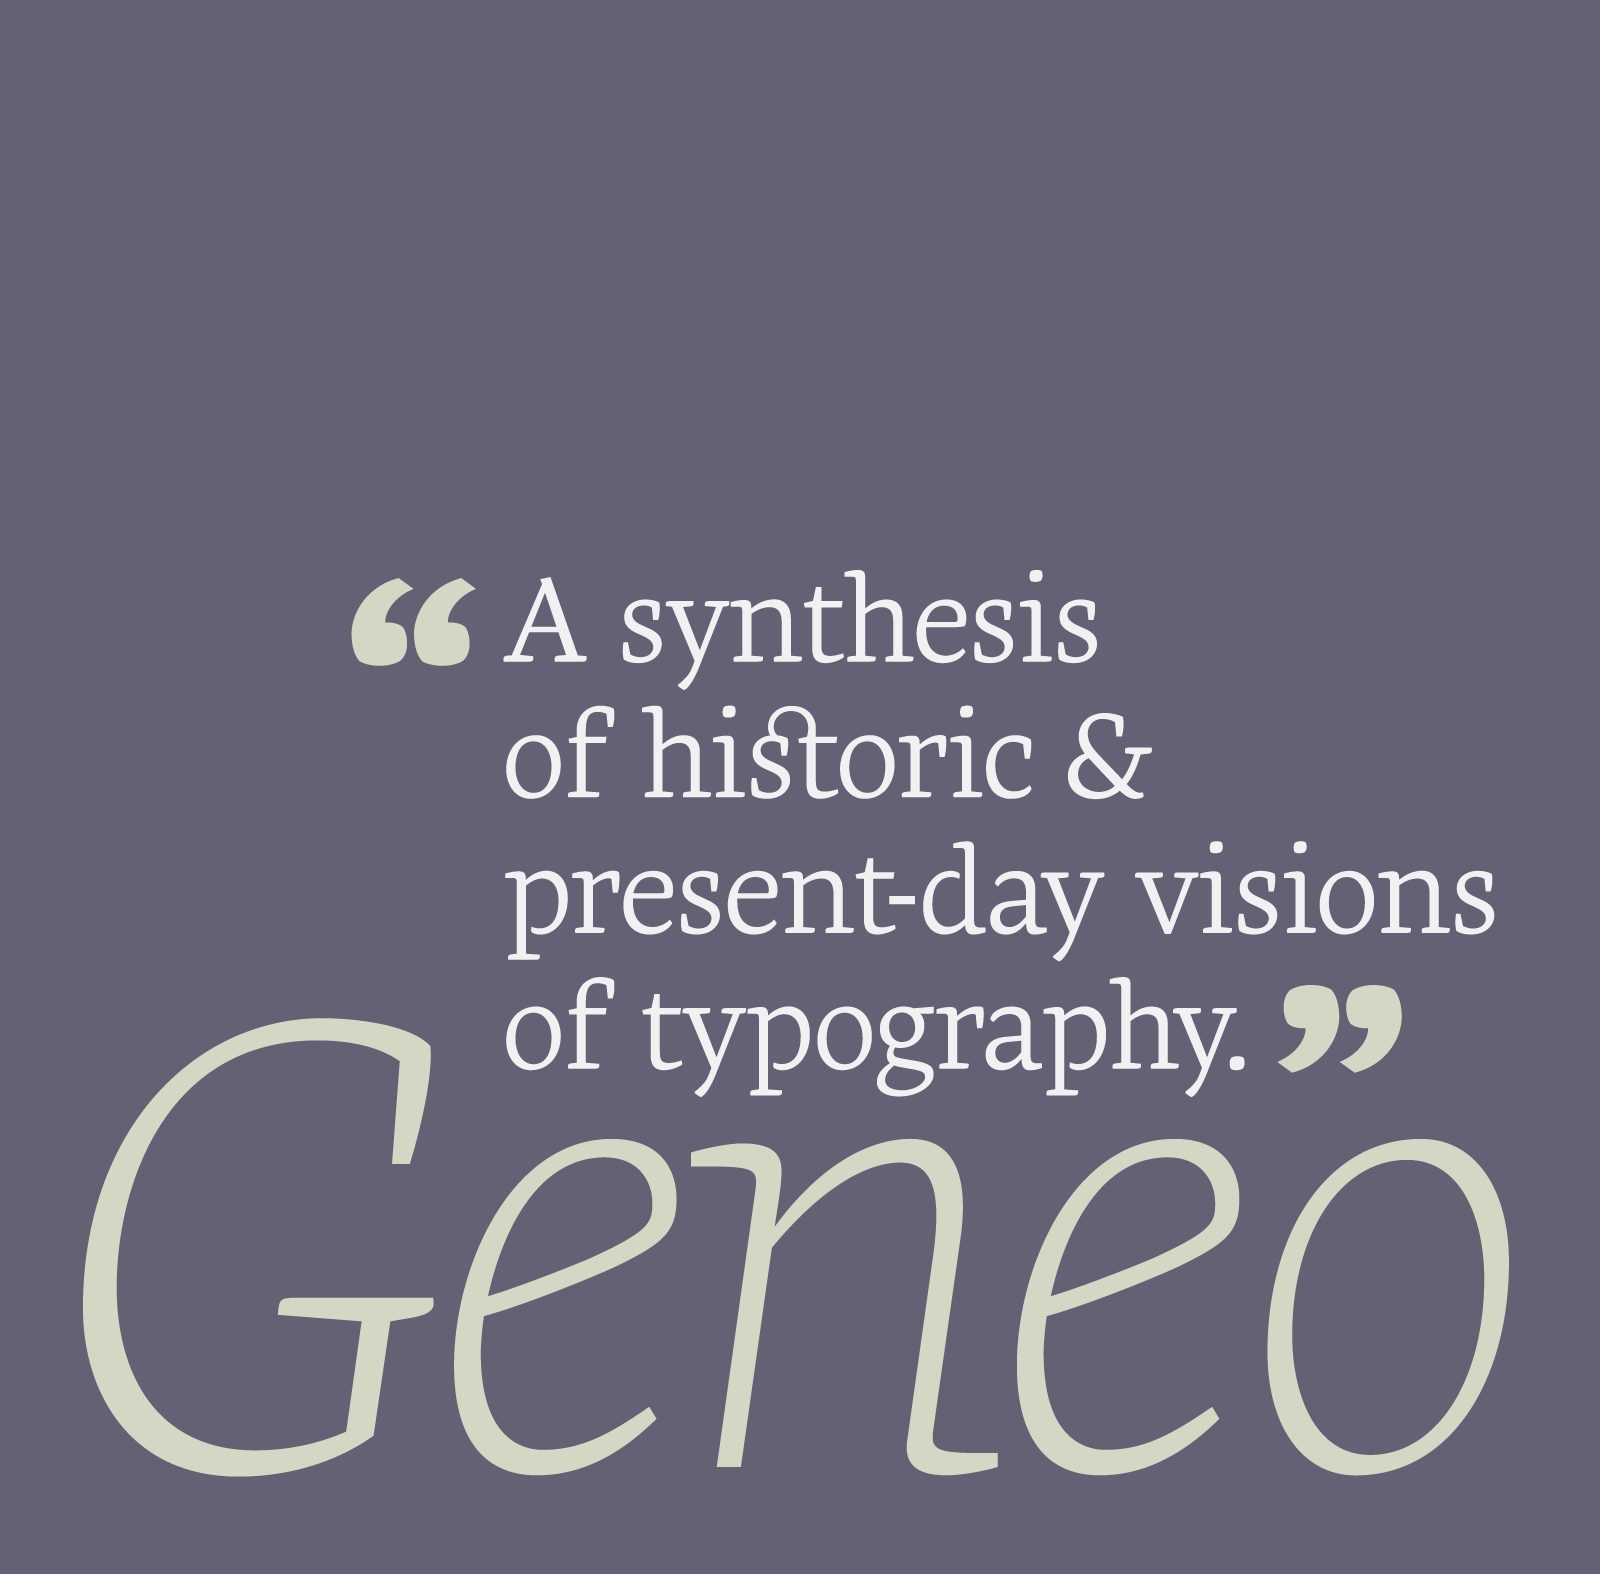 Geneo: a synthesis of historic and present-day visions of typography by Stéphane Elbaz